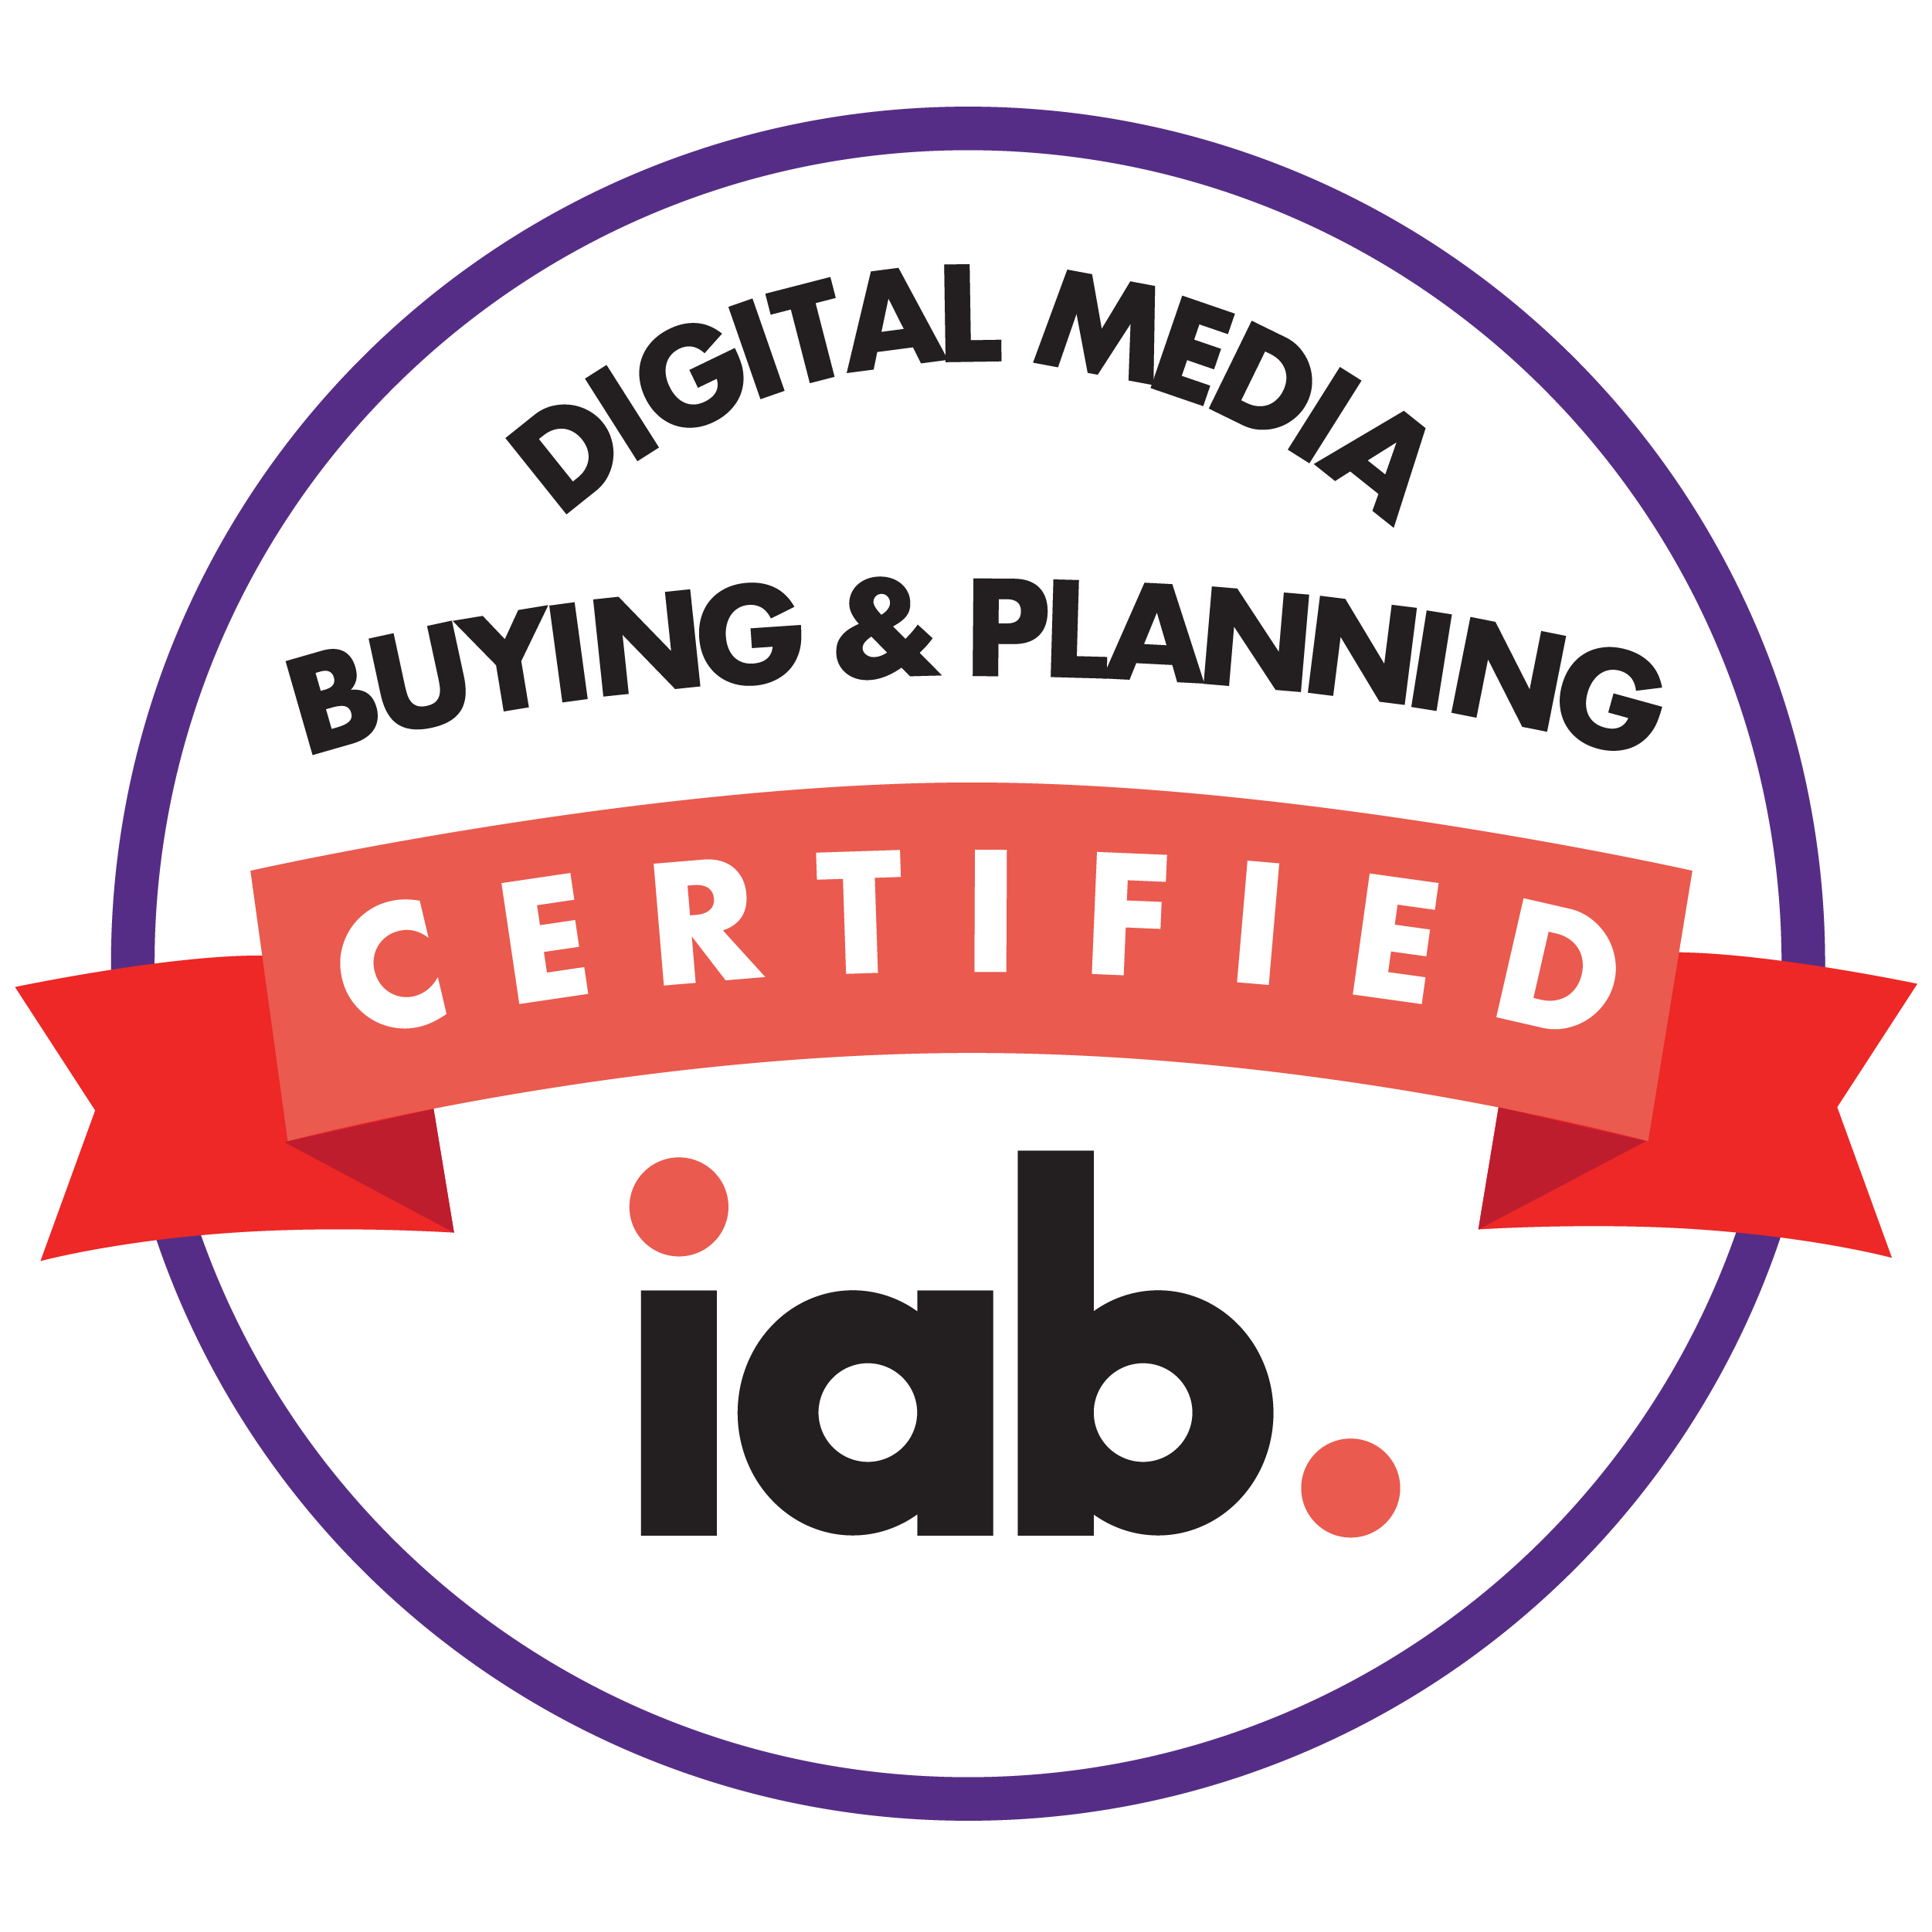 IAB Digital Media Buying & Planning Certification